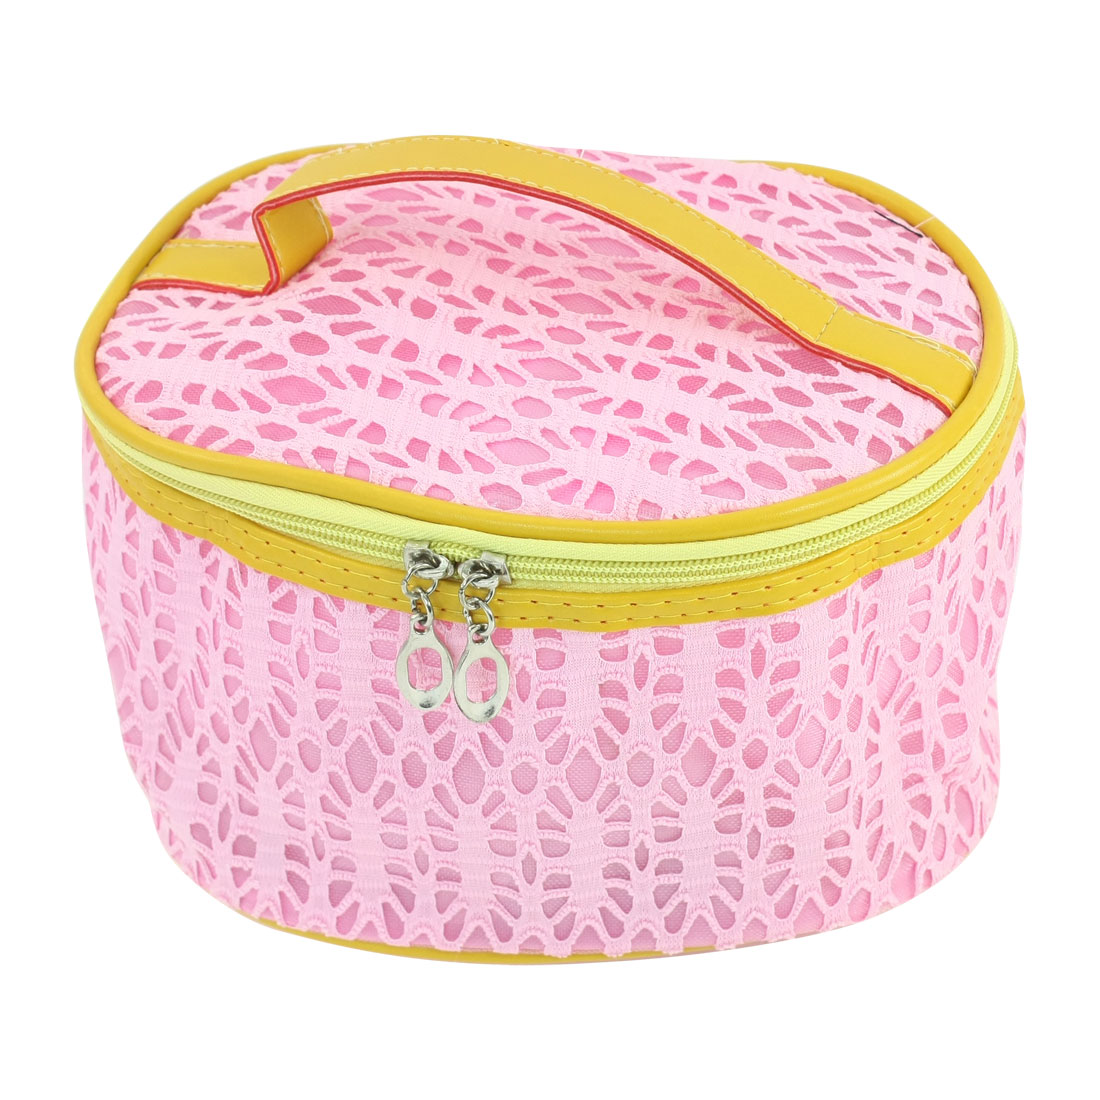 Pink Mesh Design Hollow Out Oval Shaped Zip Up Toiletry Cosmetic Bag w Mirror